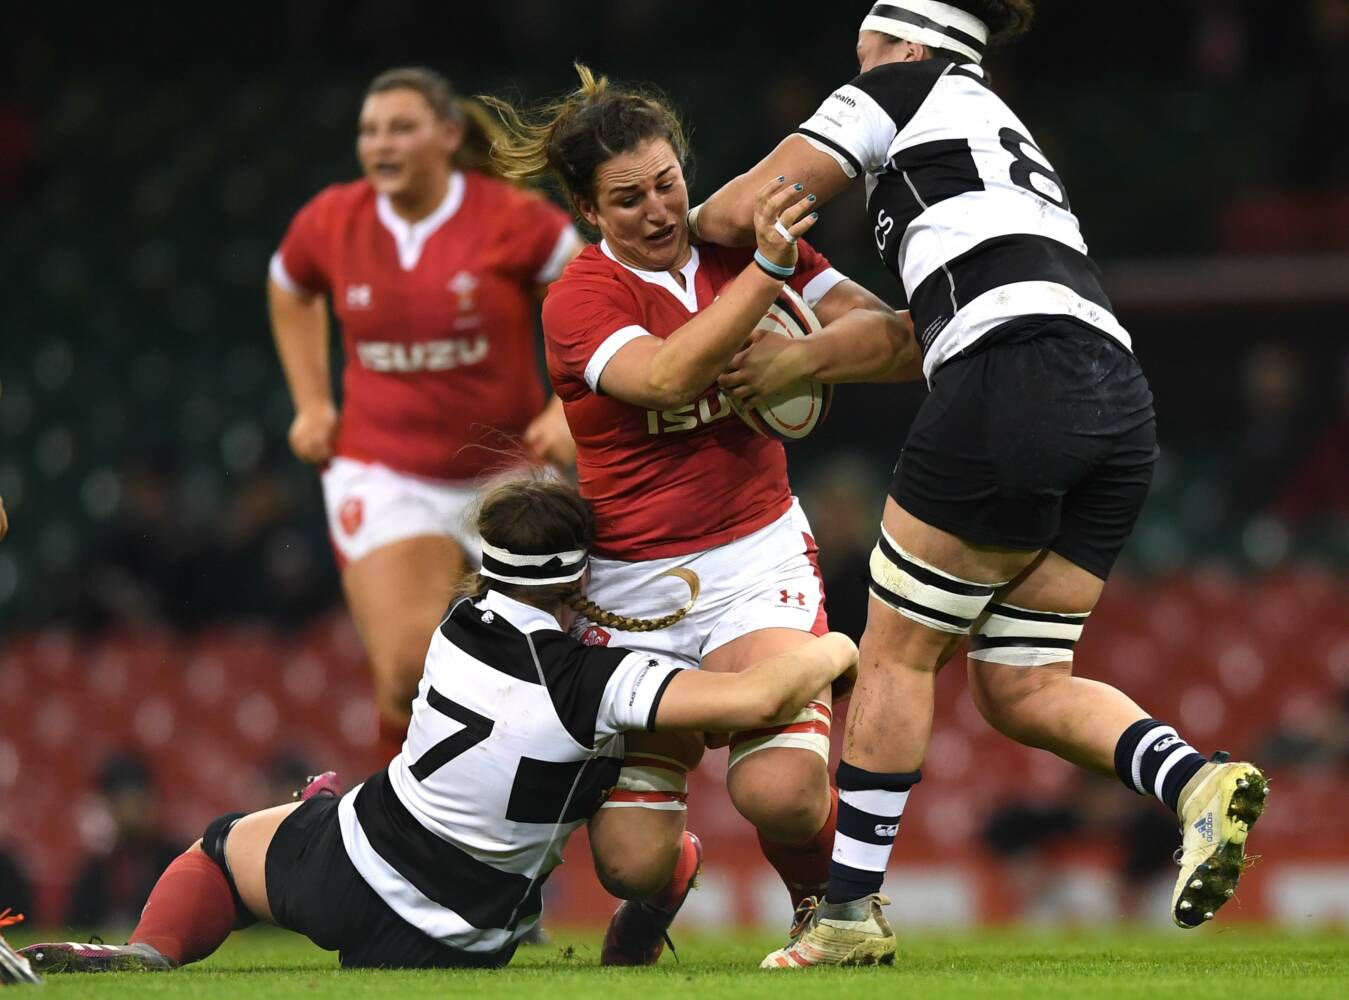 Wales Women building nicely for Six Nations, says Lillicrap